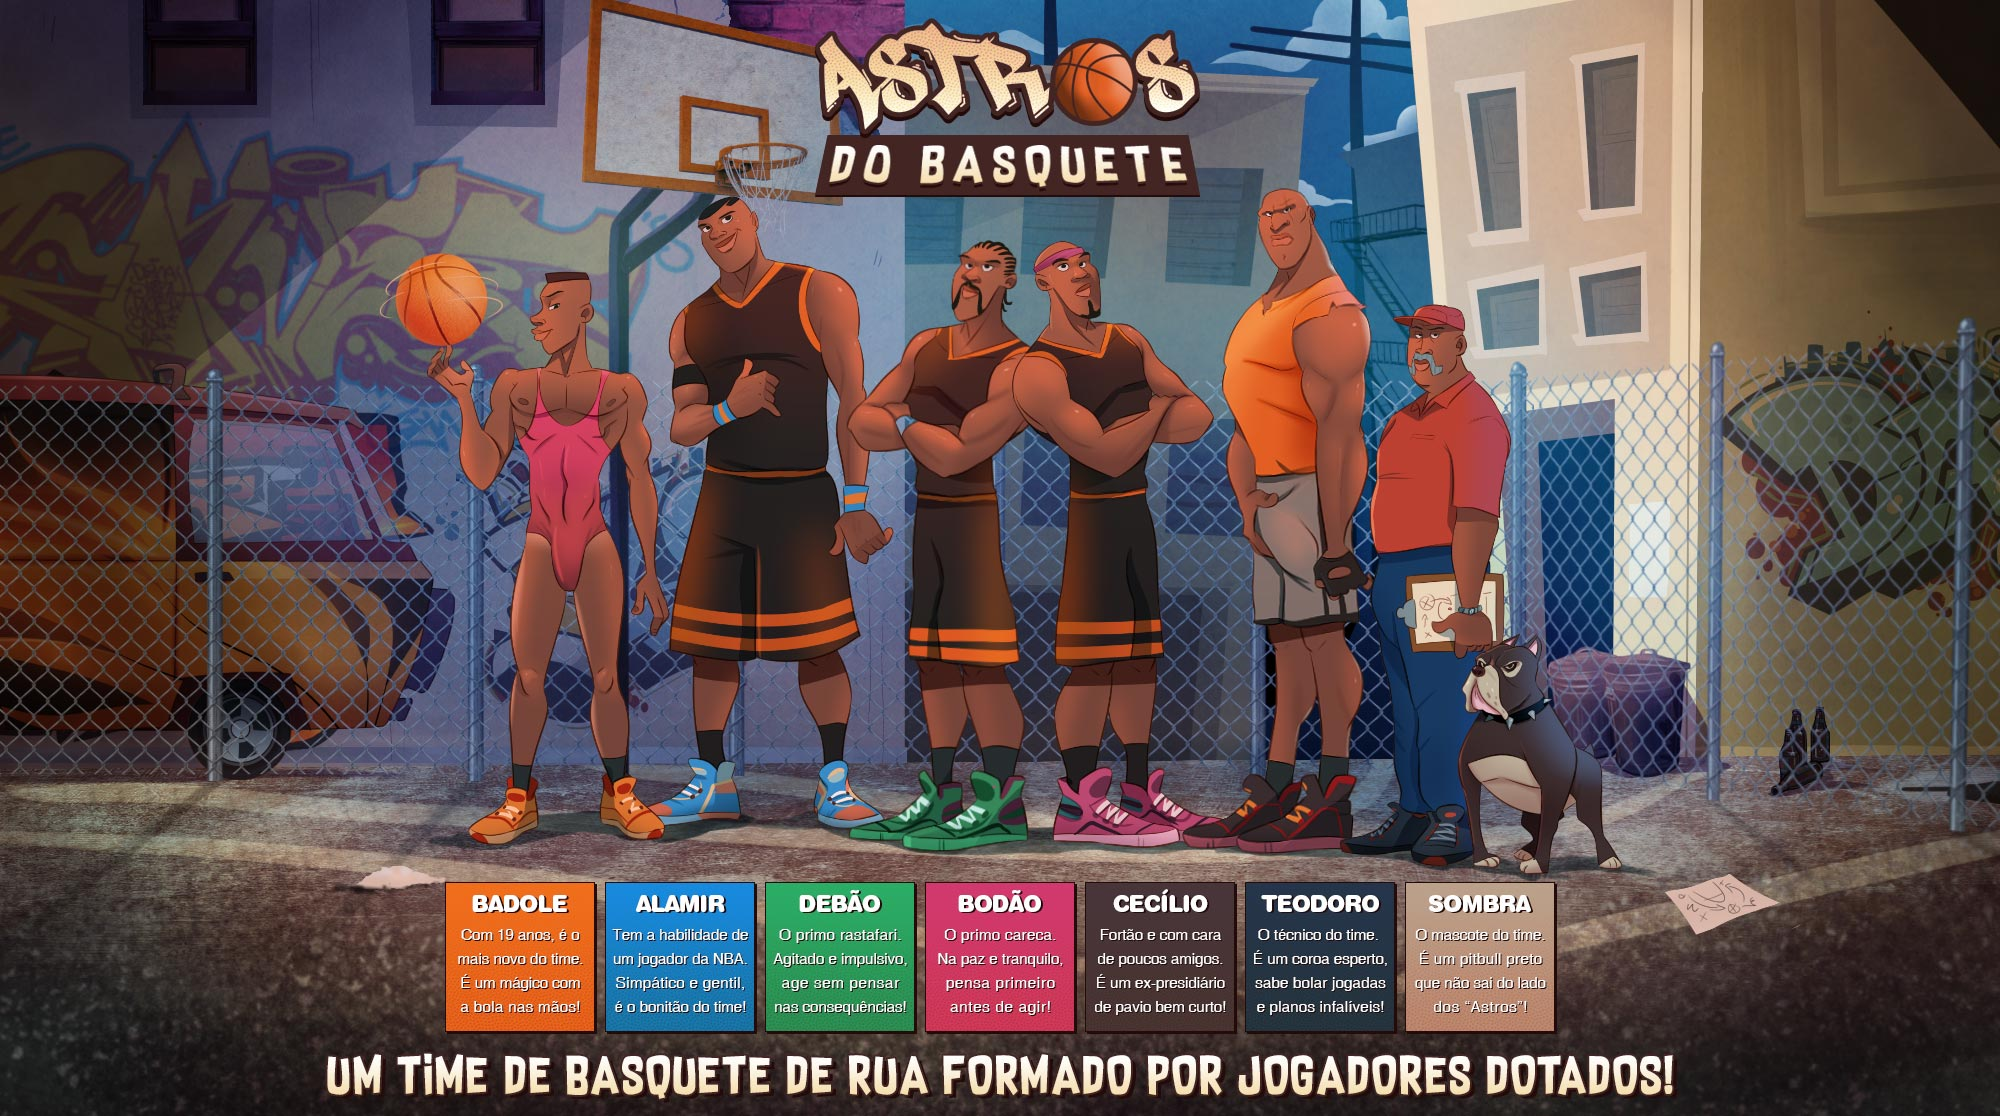 Astros do Basquete - header